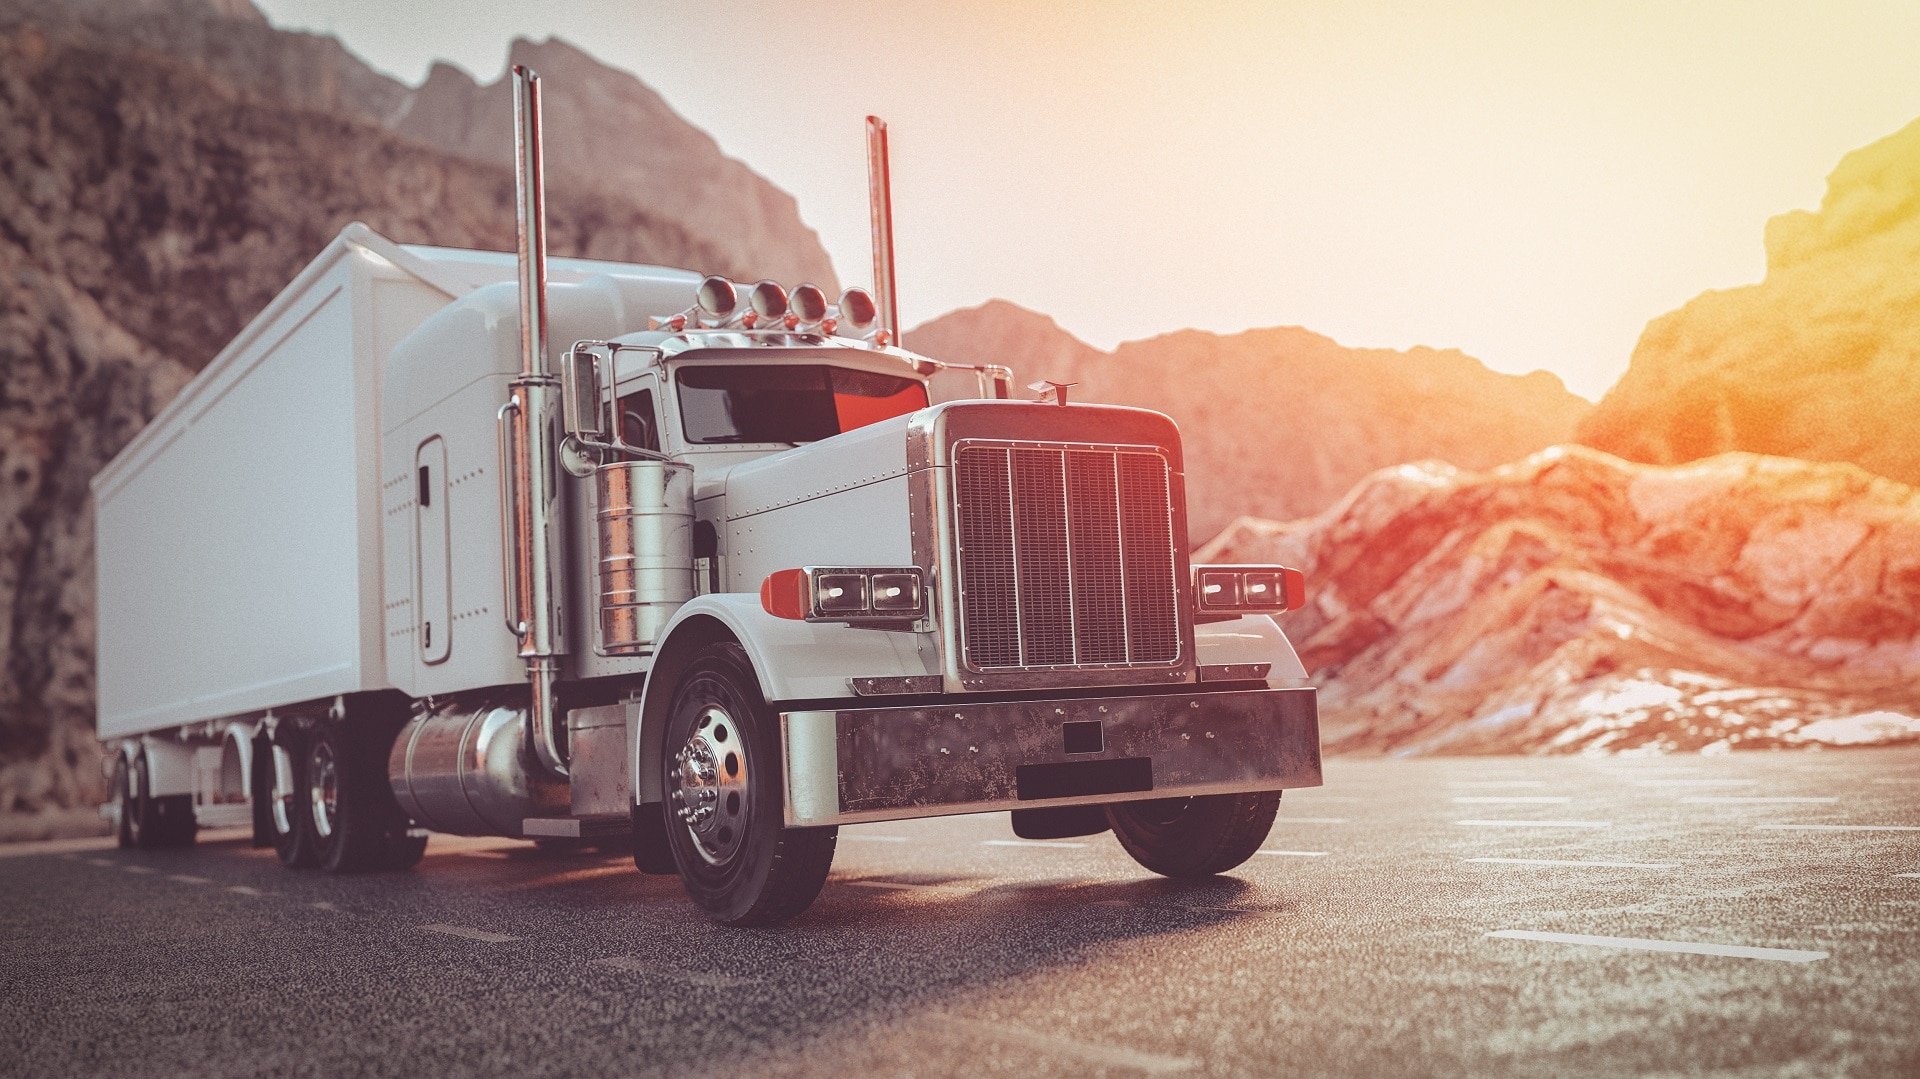 How Personal Injury Lawsuits are Impacting the Trucking Industry